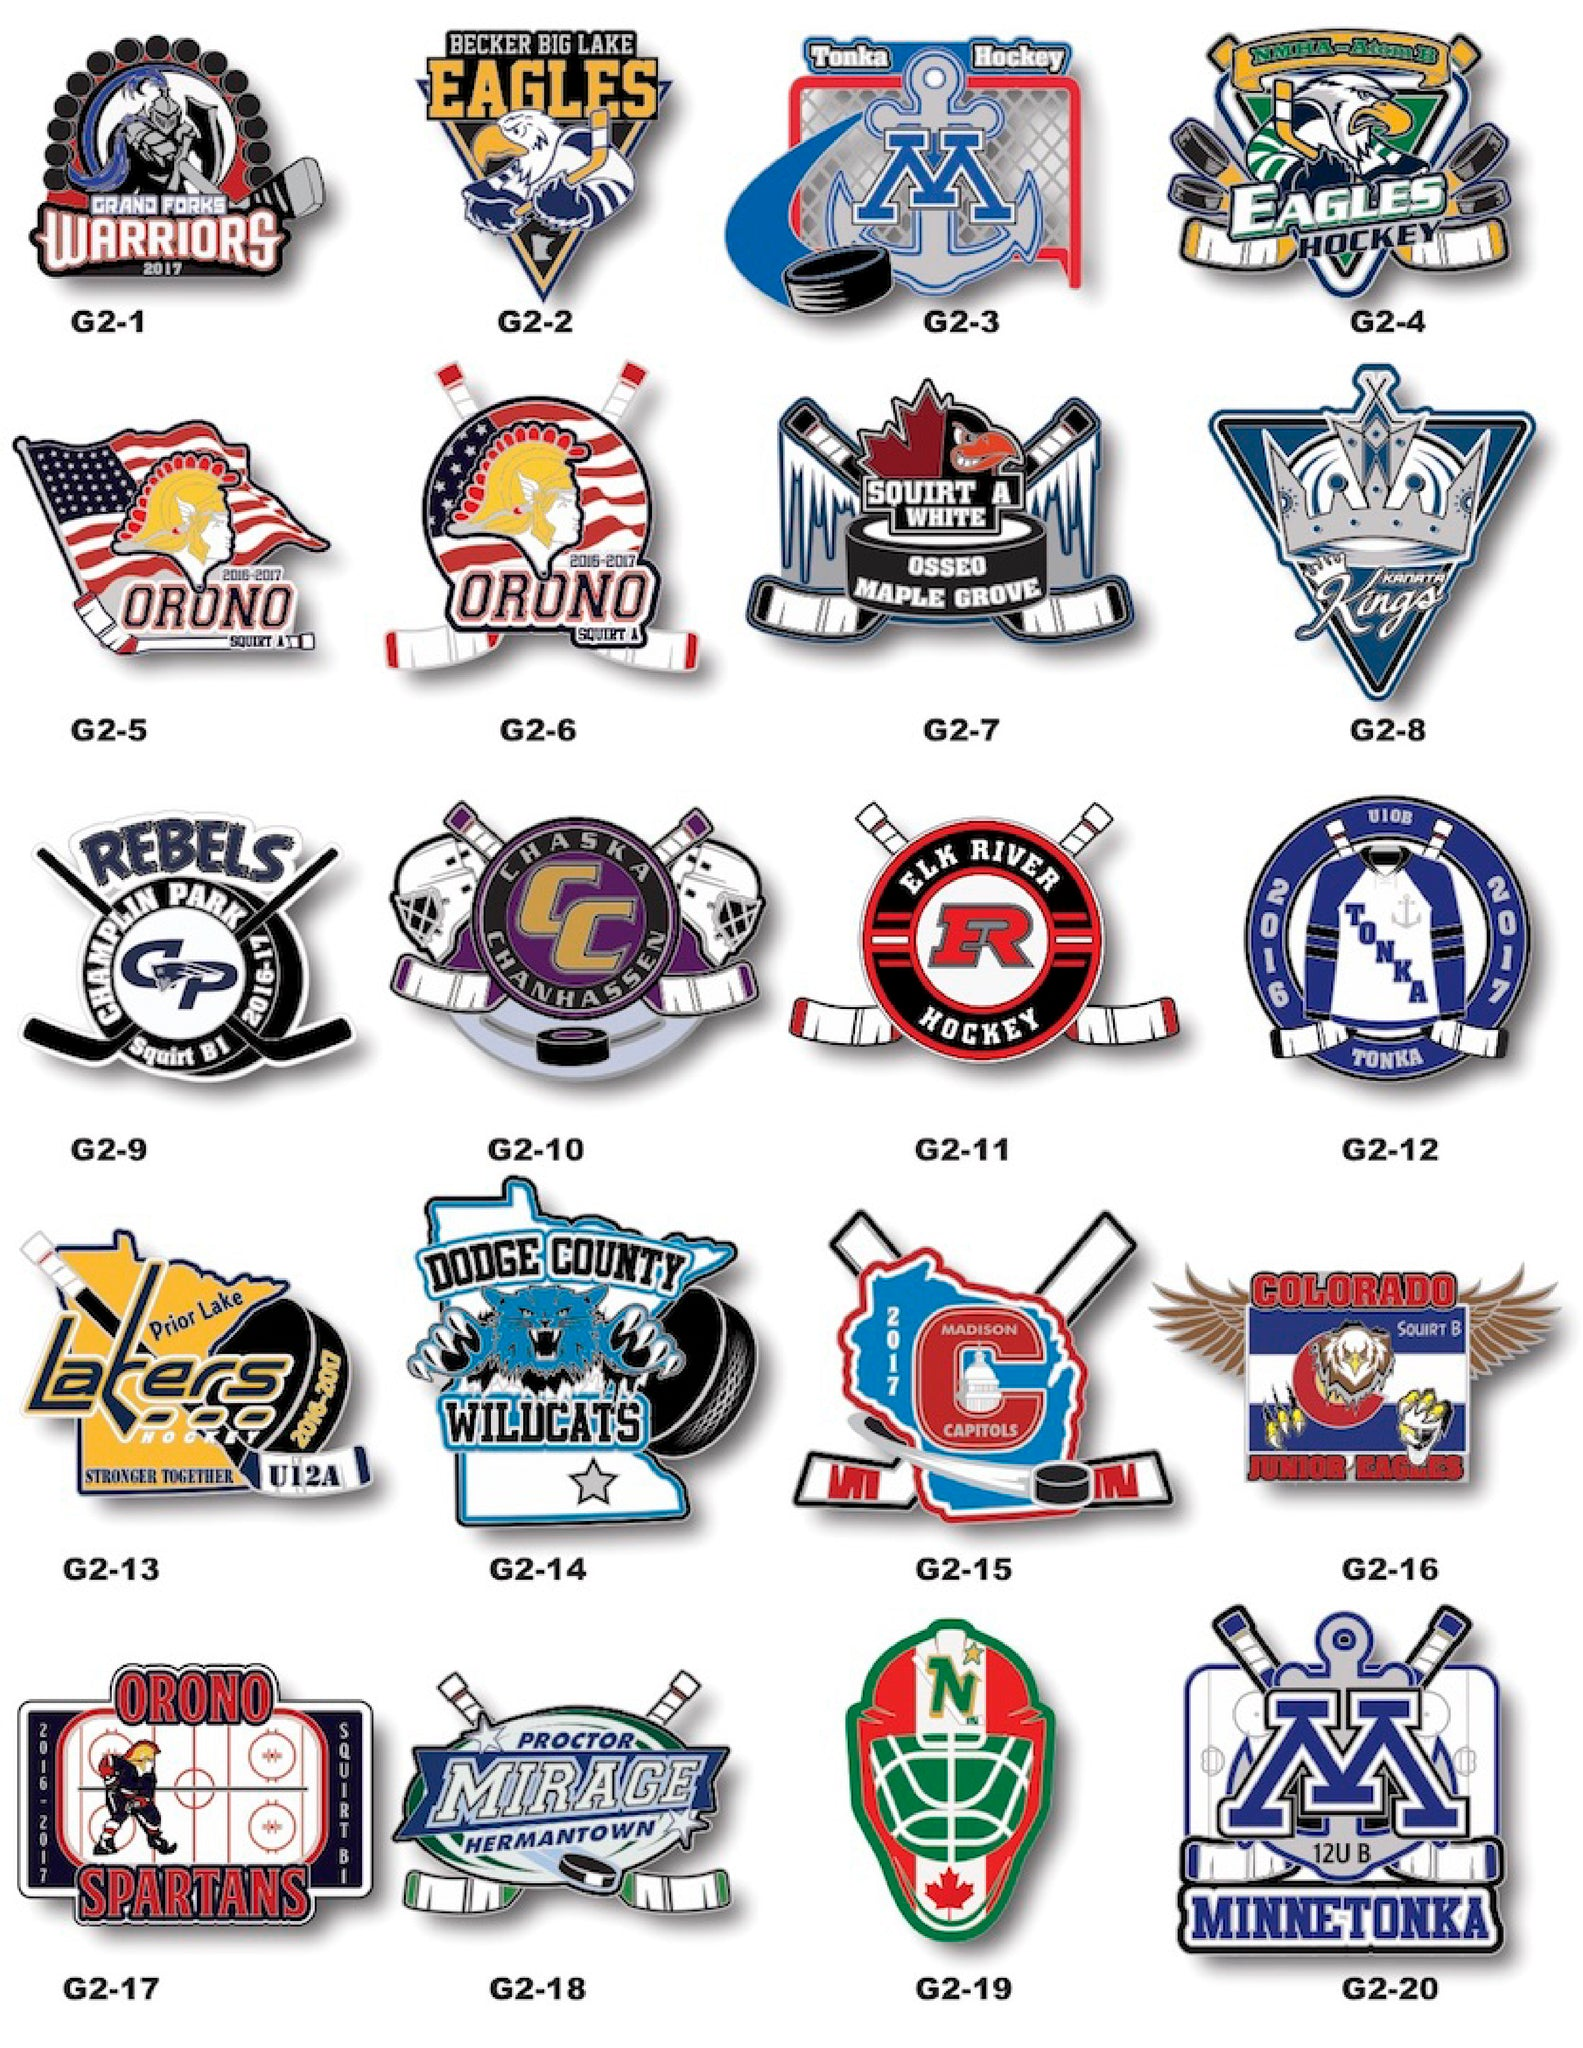 Hockey Trading Pin Gallery #2 - SteelBerry Pins